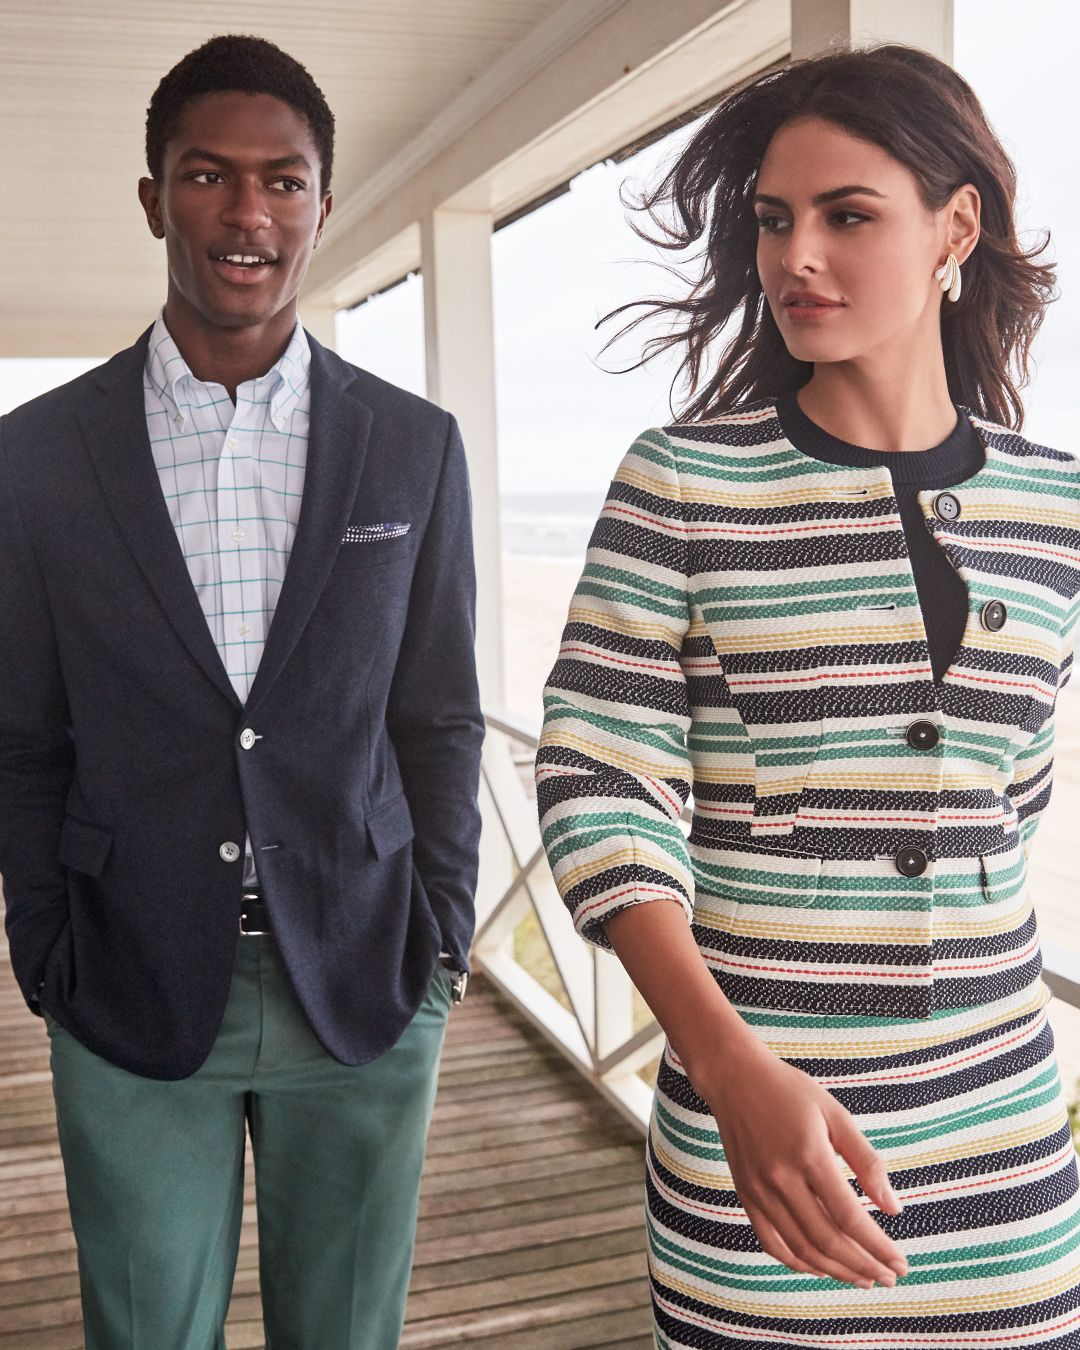 later low priced great deals 2017 Shop the Brooks Brothers Spring '19 Collection in 2019 ...